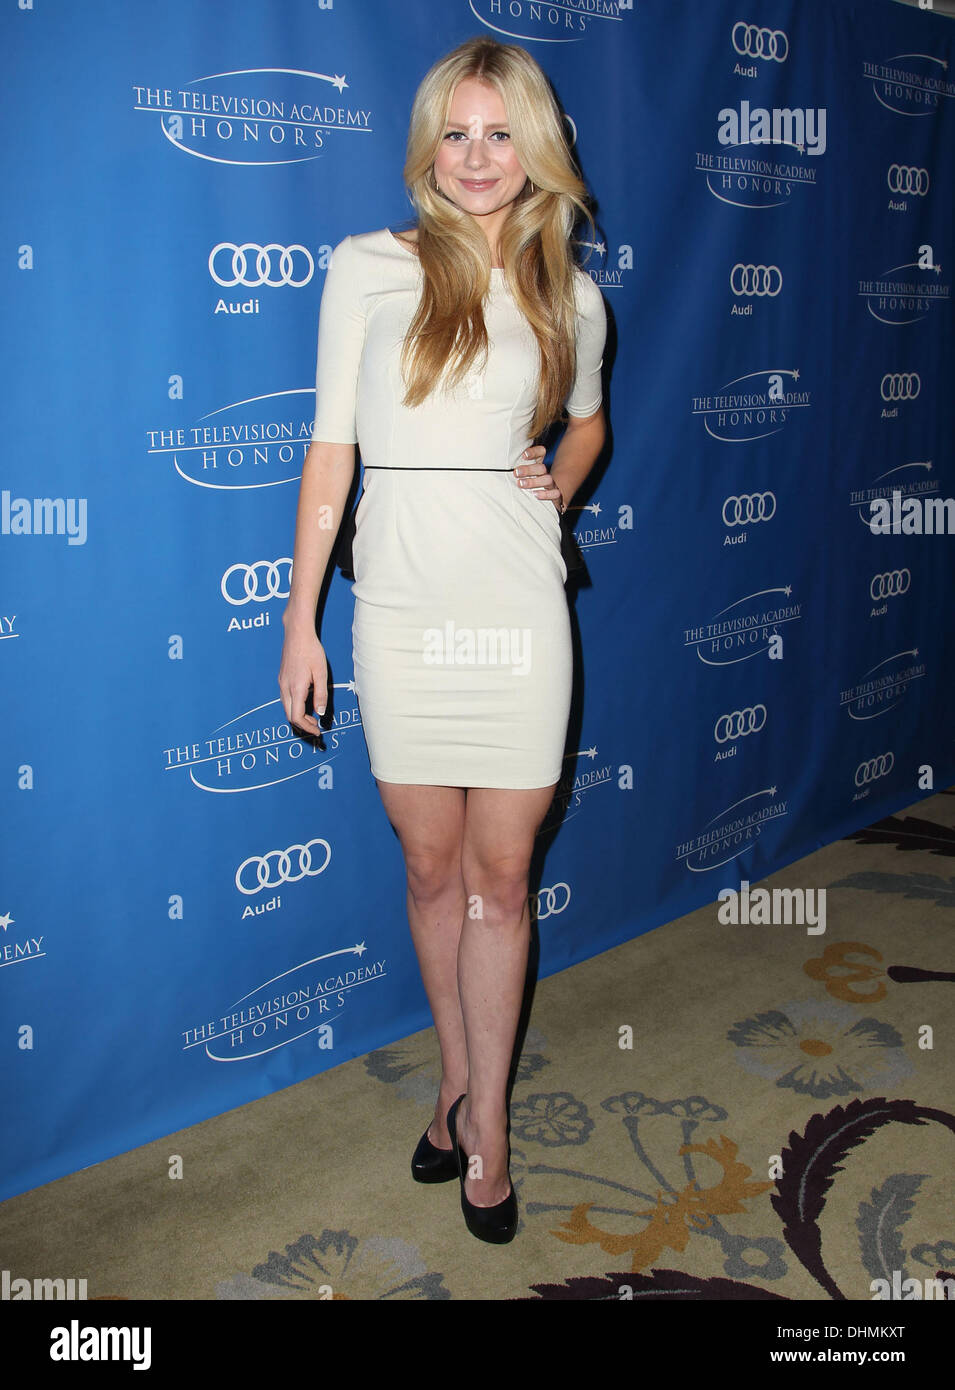 Justine Lupe Justine Lupe new pictures